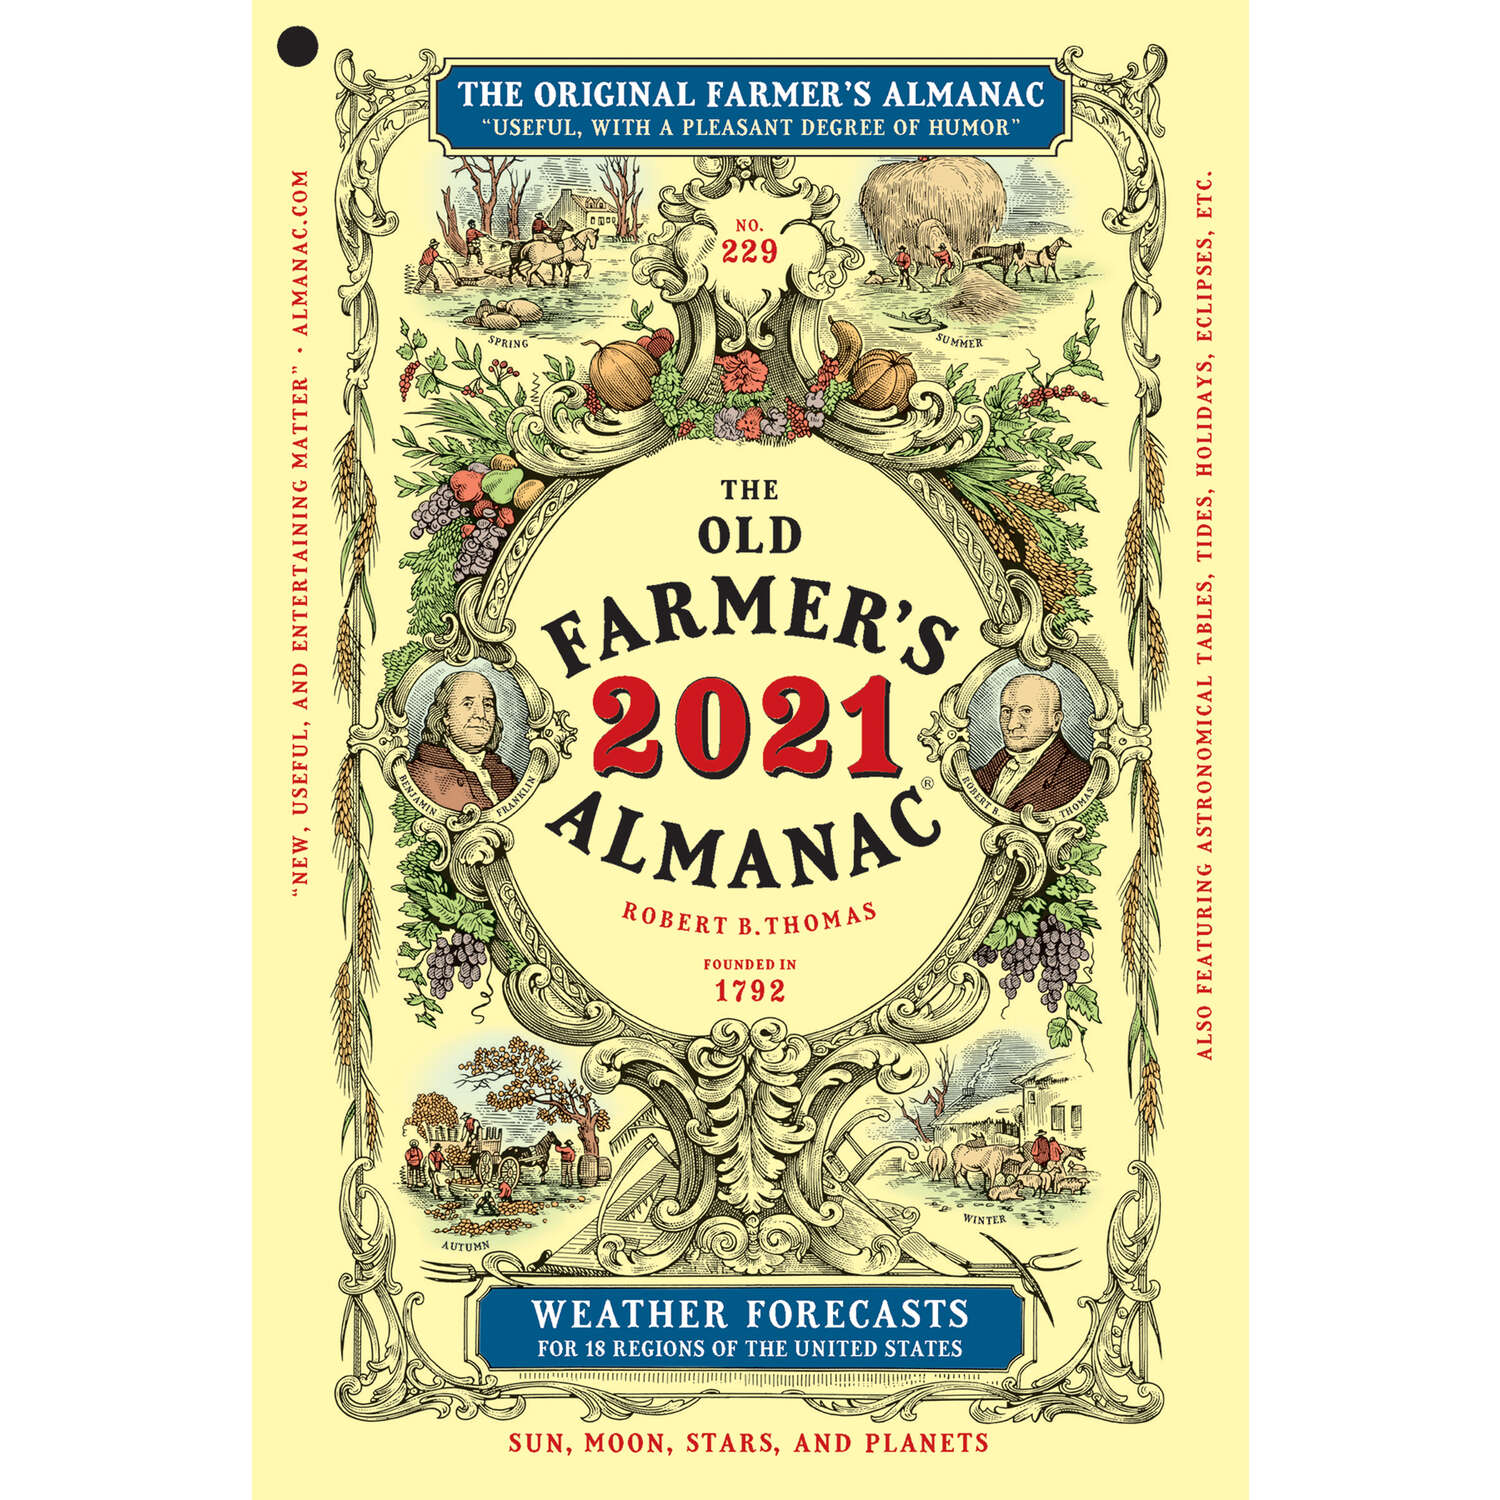 The Old Farmers Almanac Yankee Publishing 2021 Almanac Reference Book Ace Hardware,Wildflowers That Bloom In The Fall